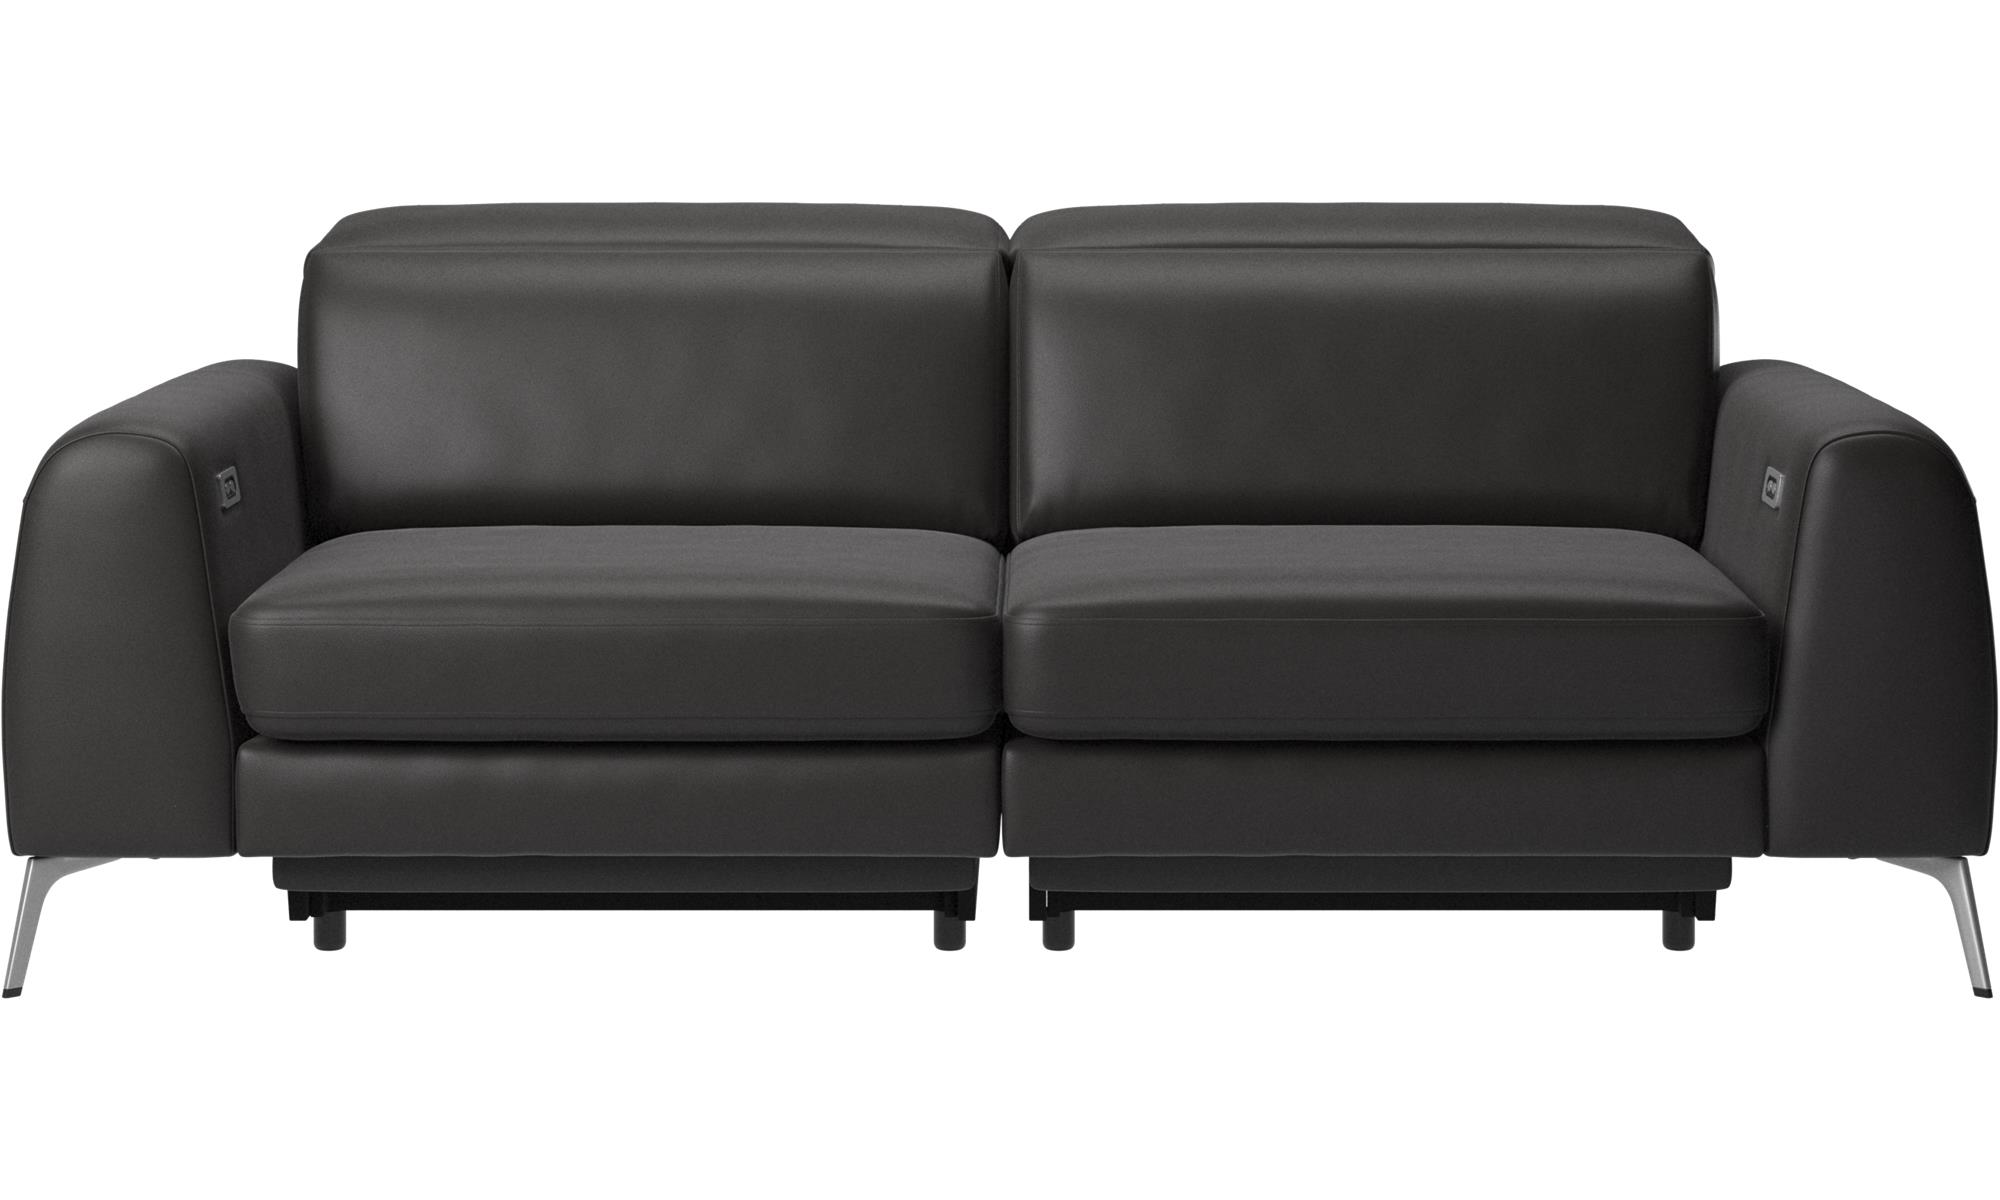 3 Seater Sofas Madison Sofa With Electric Seat Head And